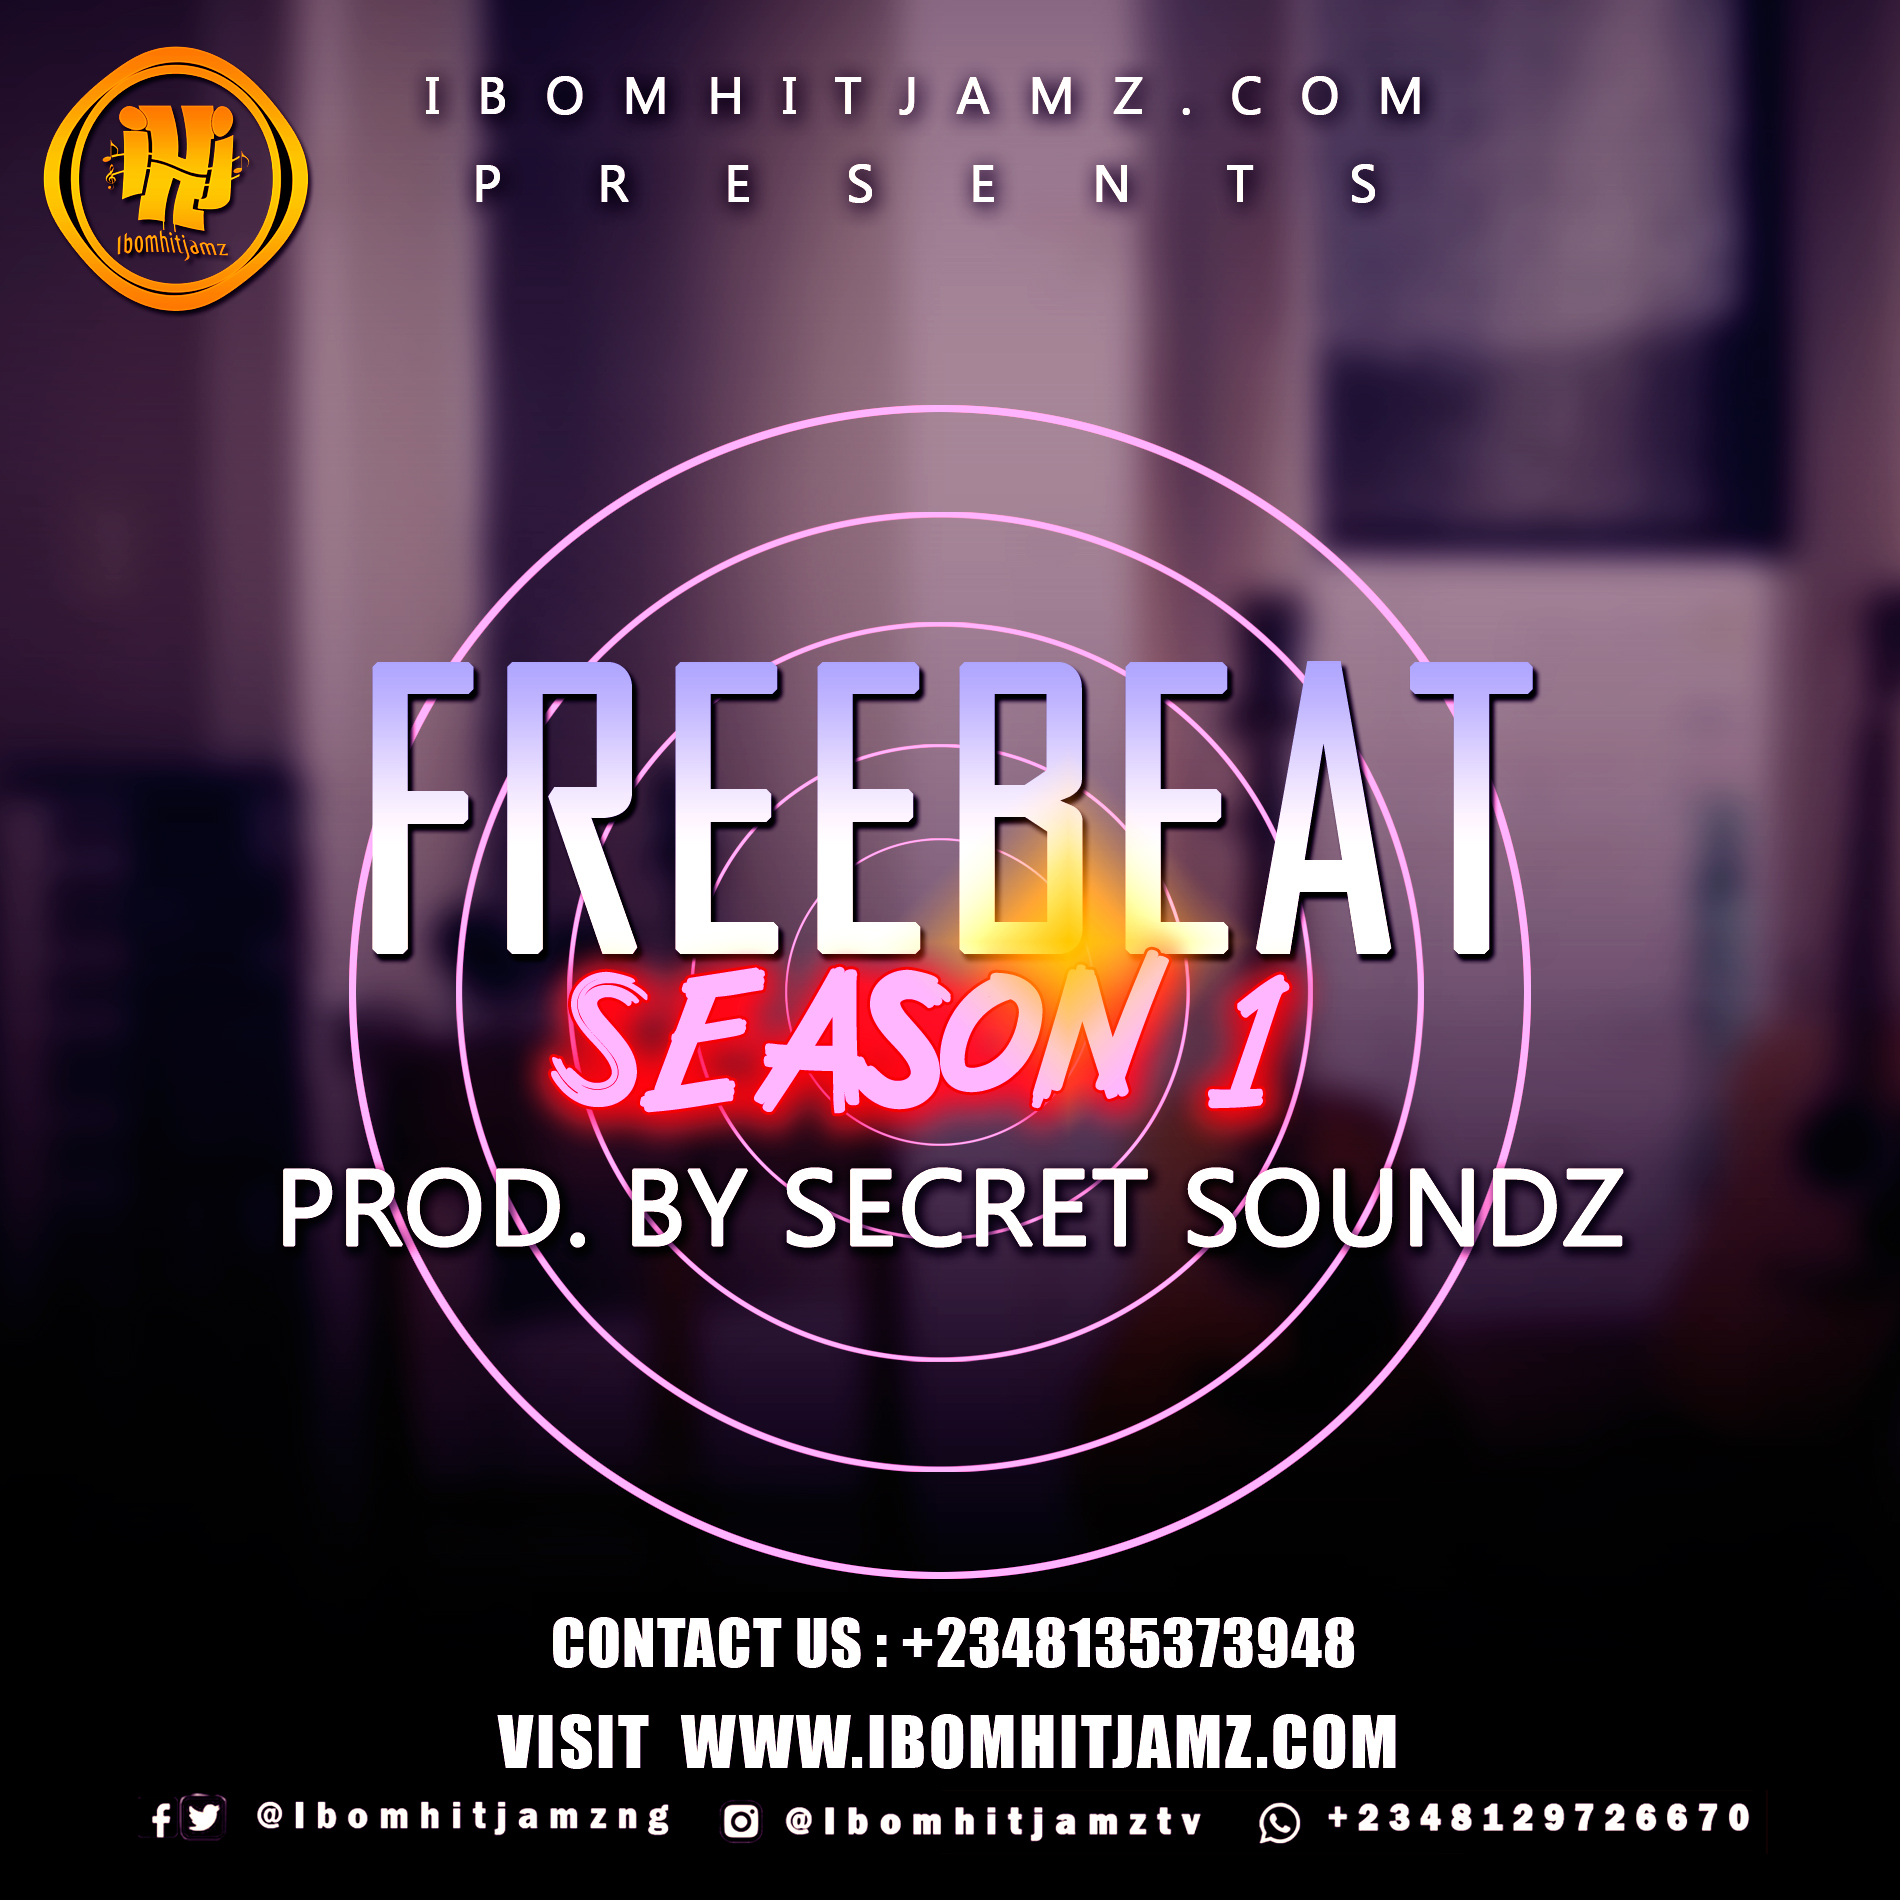 DOWNLOAD: Free Beat – Secret Soundz